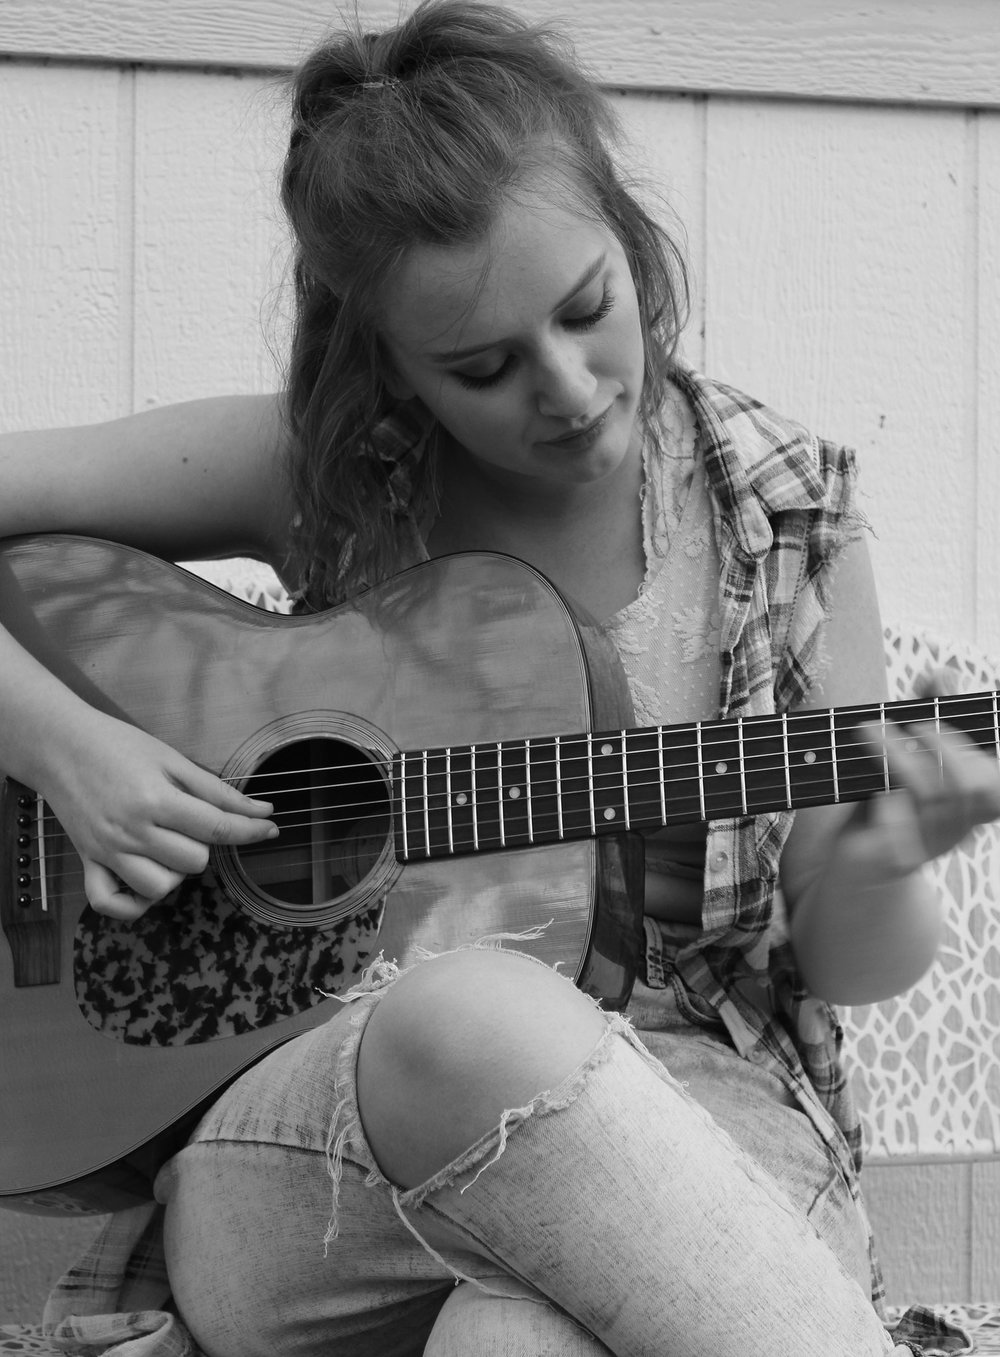 singer, songwriter: - Guitar, ukulele, piano, voice, words